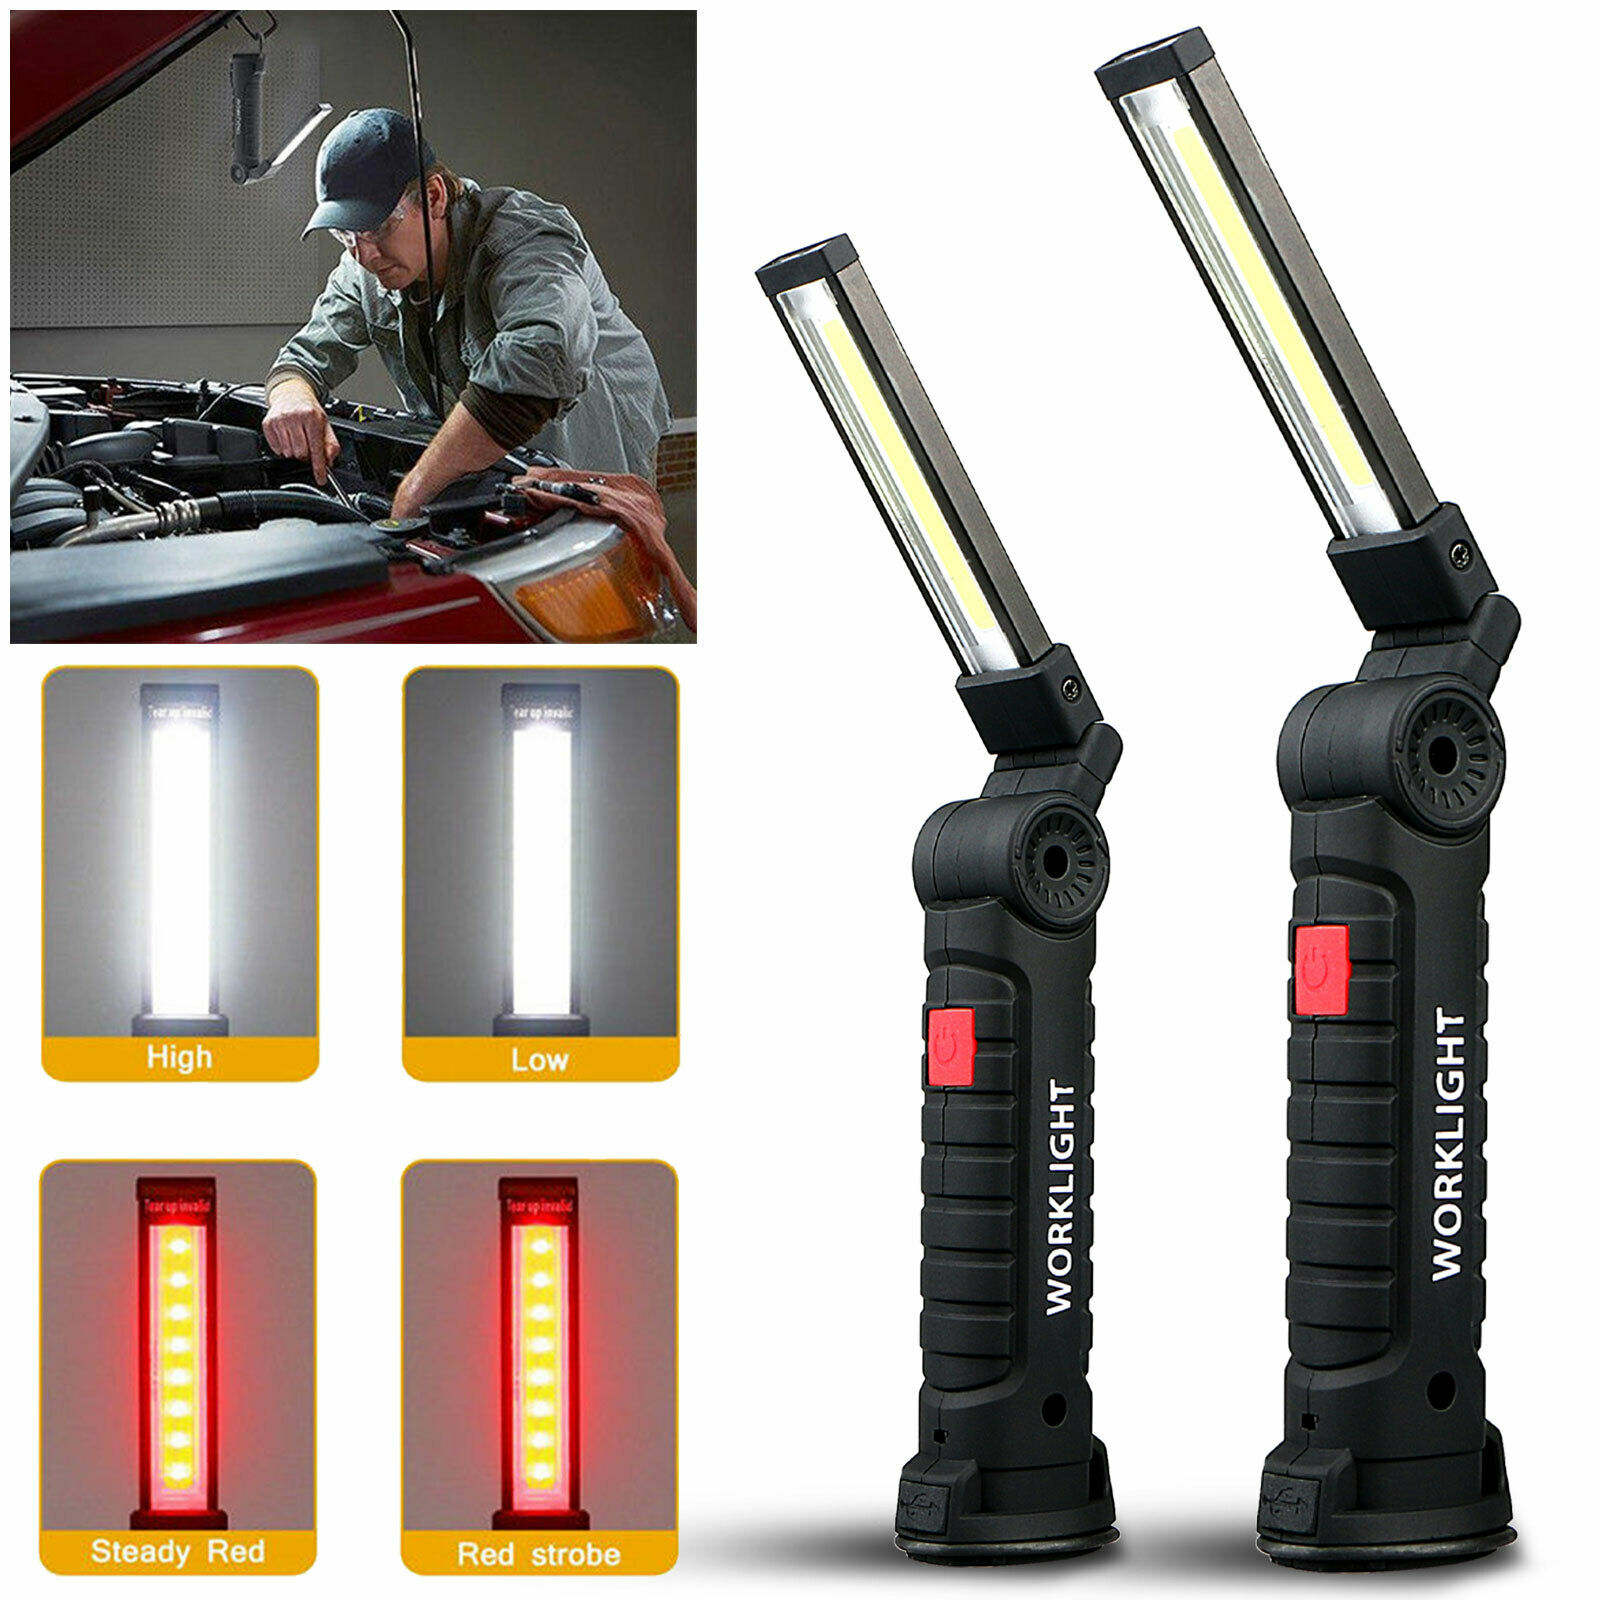 Demeras COB Led Work Light USB Rechargeable Work Light with Magnetic Base Hanging Hook for Outdoor Work Lamp Car Repair Emergency